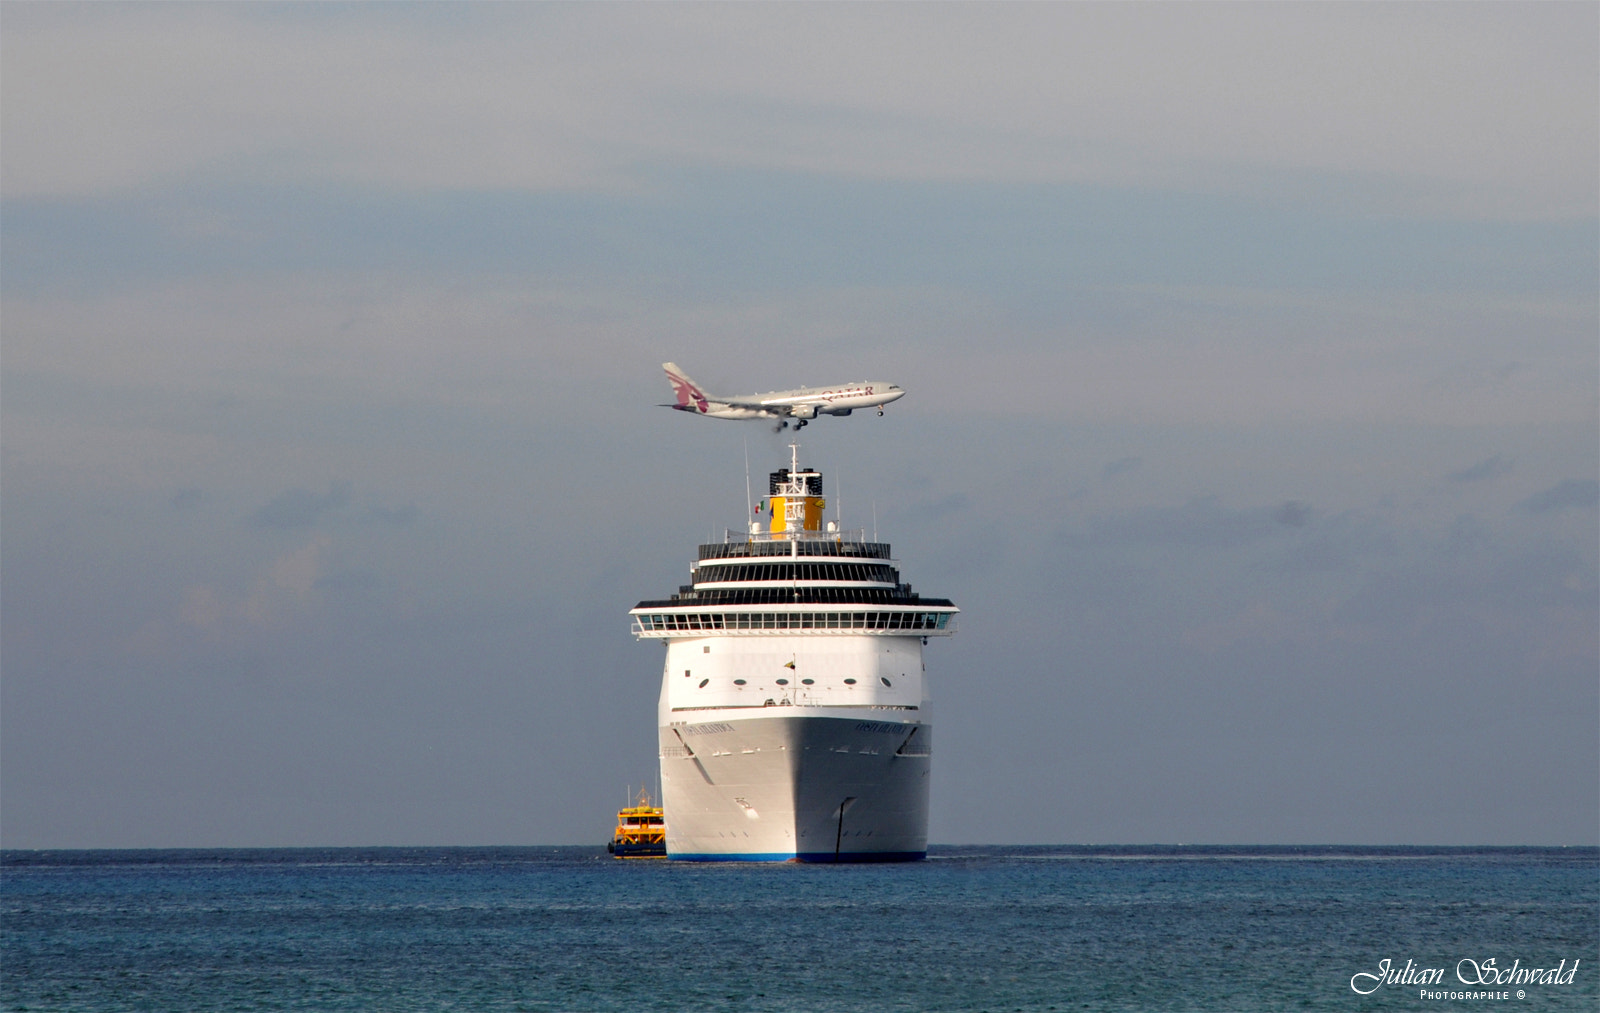 Photograph Cruise Ship vs. Aircraft by Julian Schwald on 500px